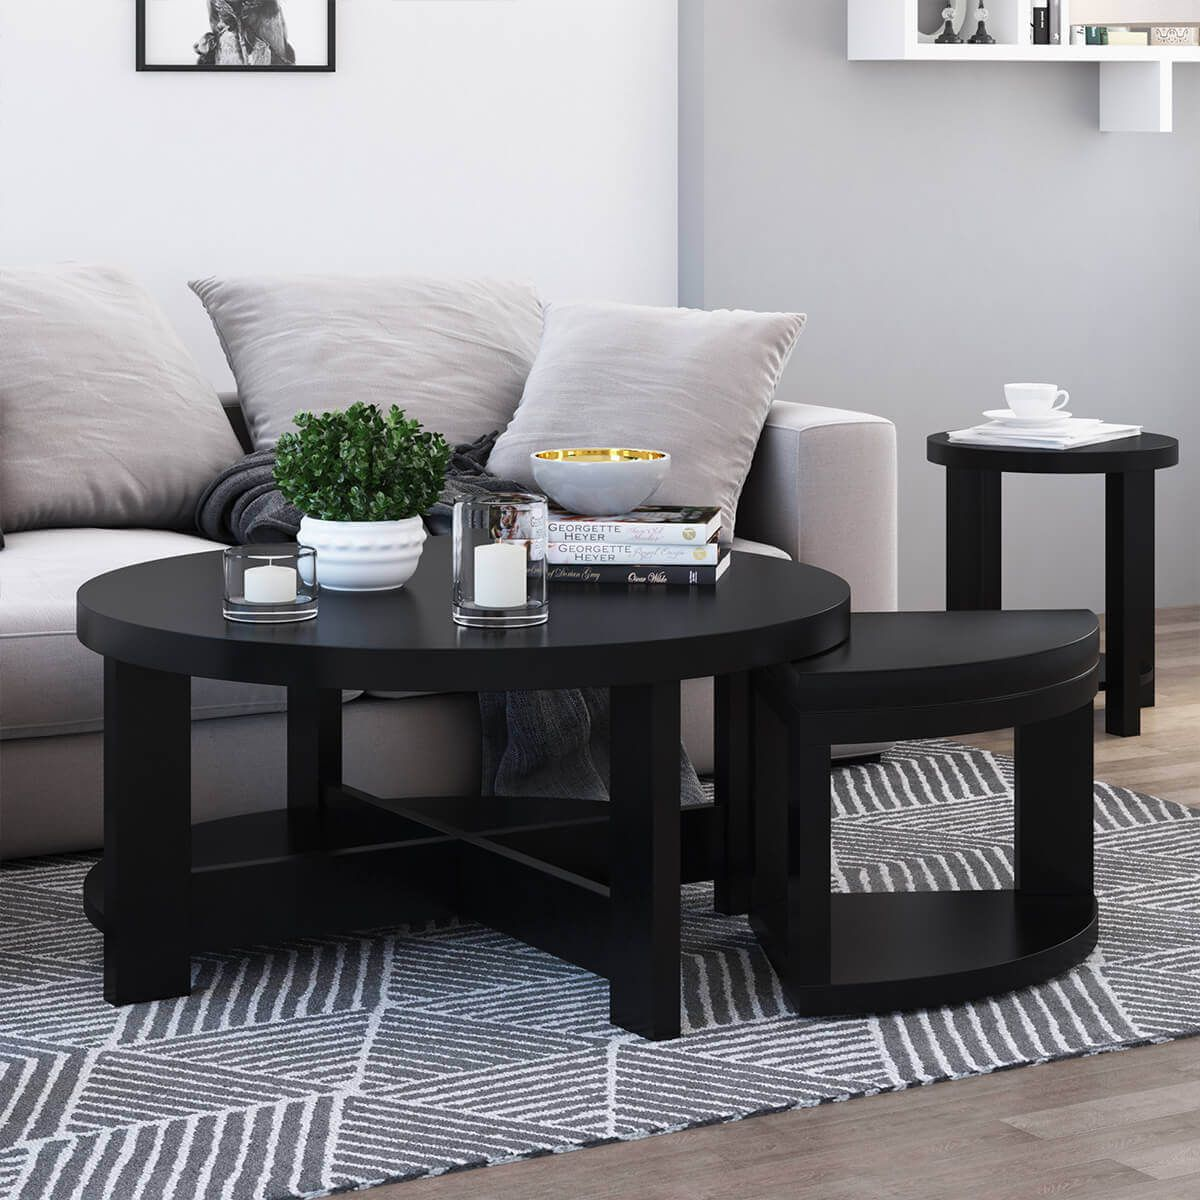 Zayante Rustic Solid Wood Round Nesting Coffee Table Set Of 3 Coffee Table Nesting Coffee Tables Round Nesting Coffee Tables [ 1200 x 1200 Pixel ]